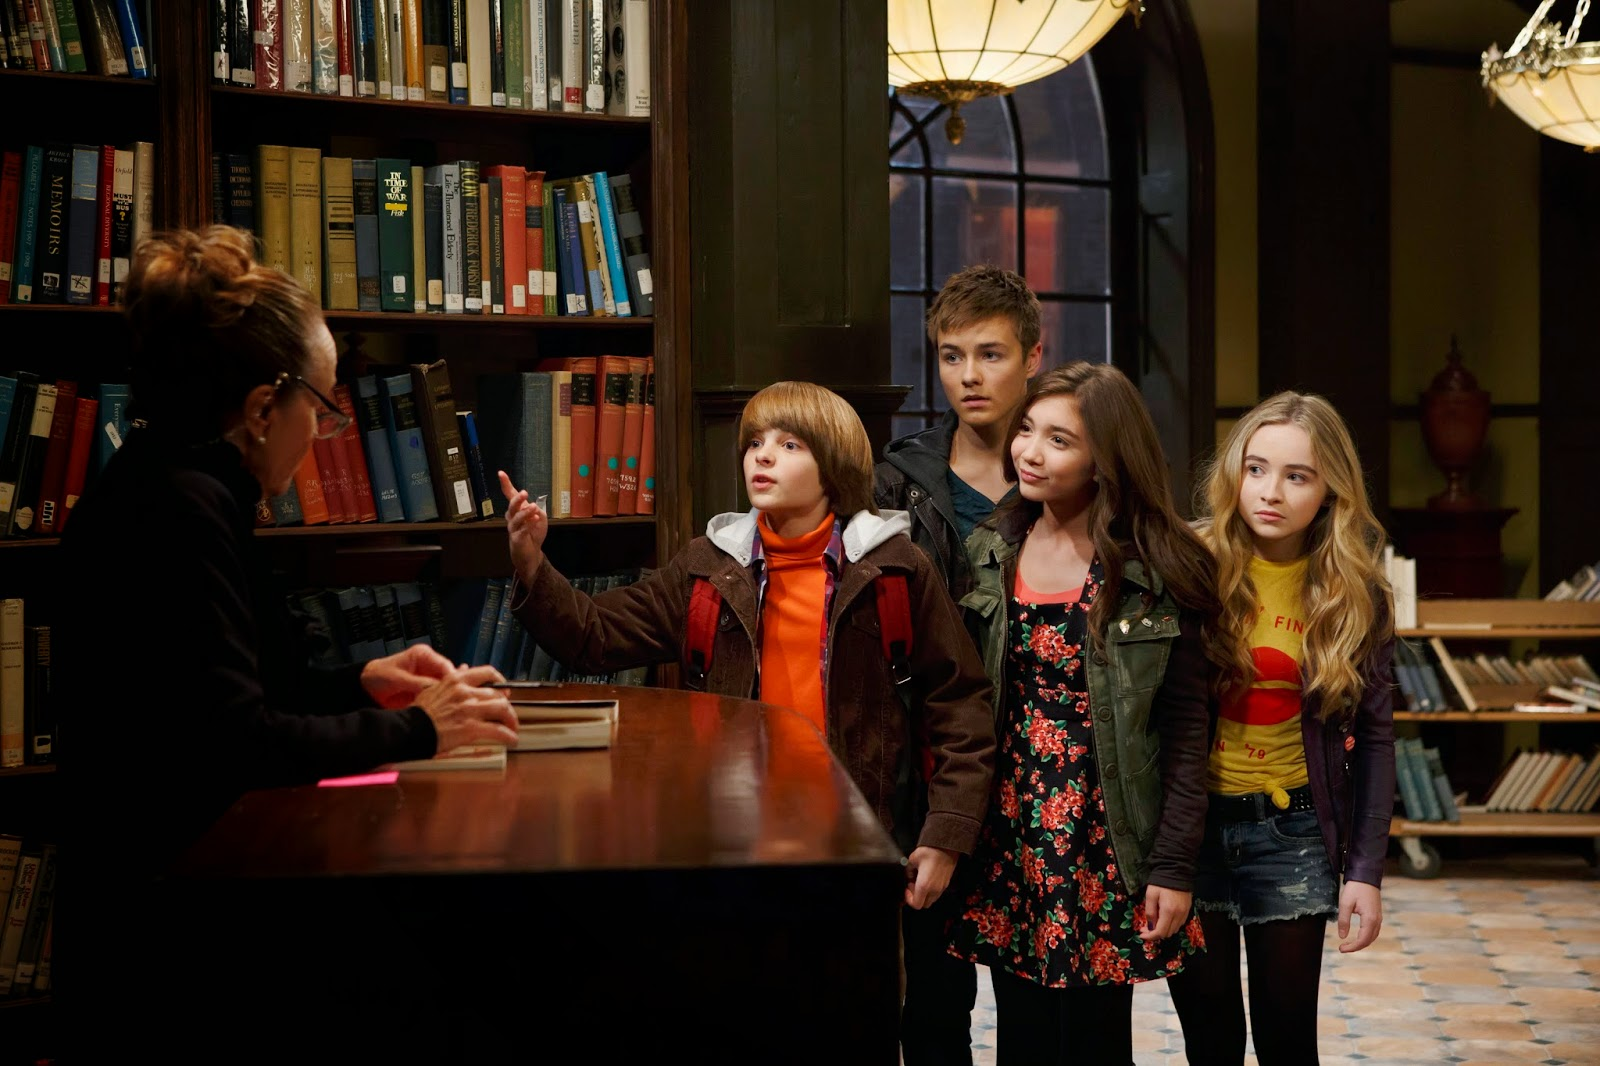 girl meets world new boy The latest tweets from girl meets world fan (@gmwfansite) we're an unofficial fan site for girl meets world follow us for updates about the show & a look back at boy meets world.